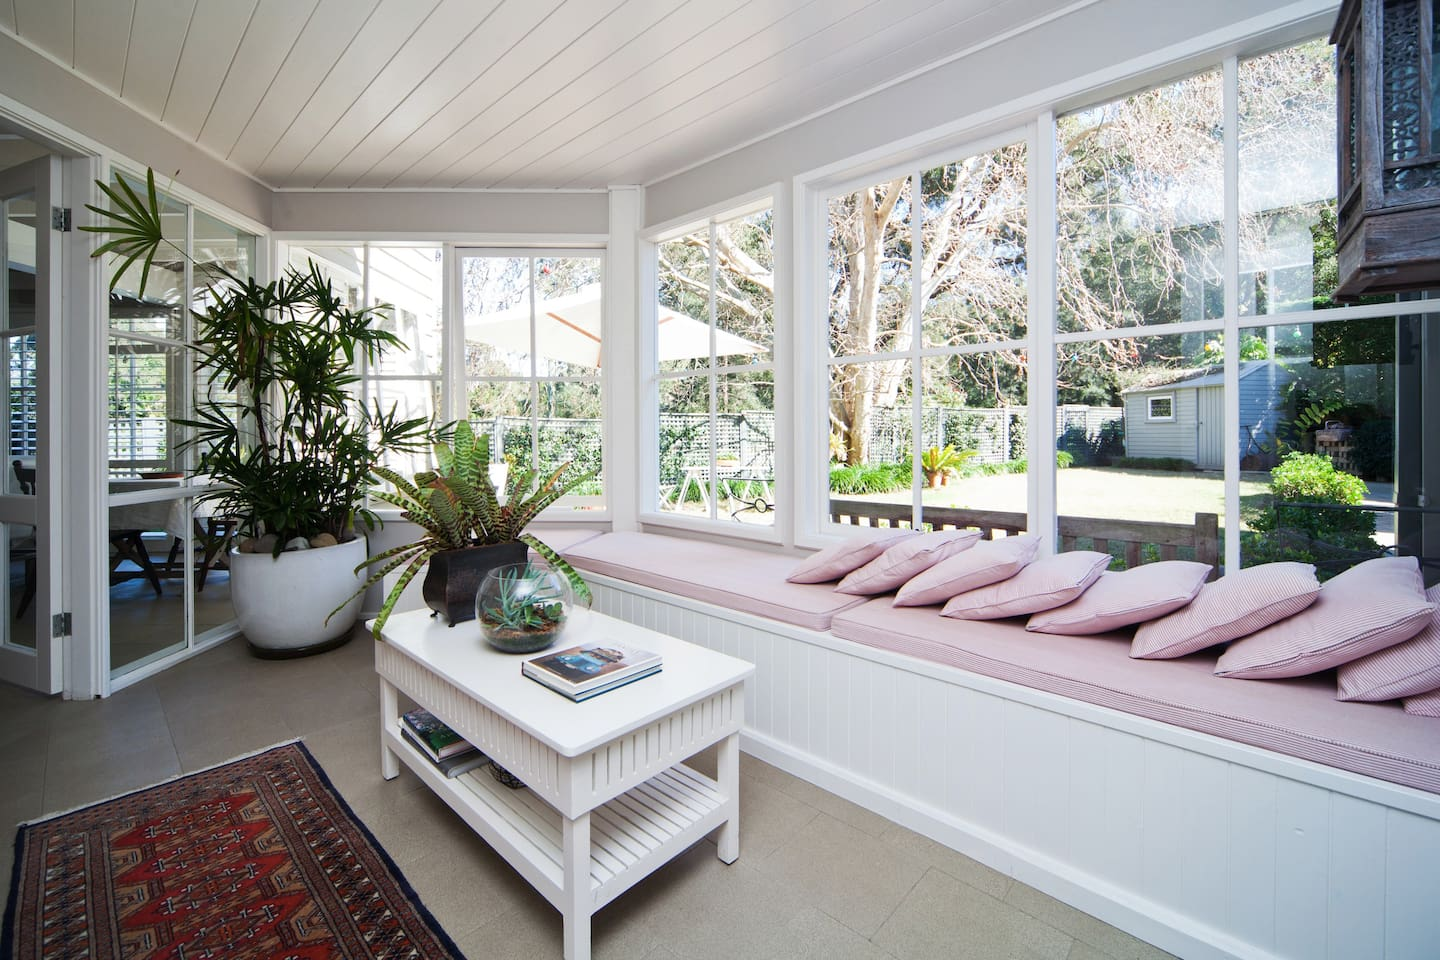 Sunroom. Curl up in the sun with a good book. Enjoy!